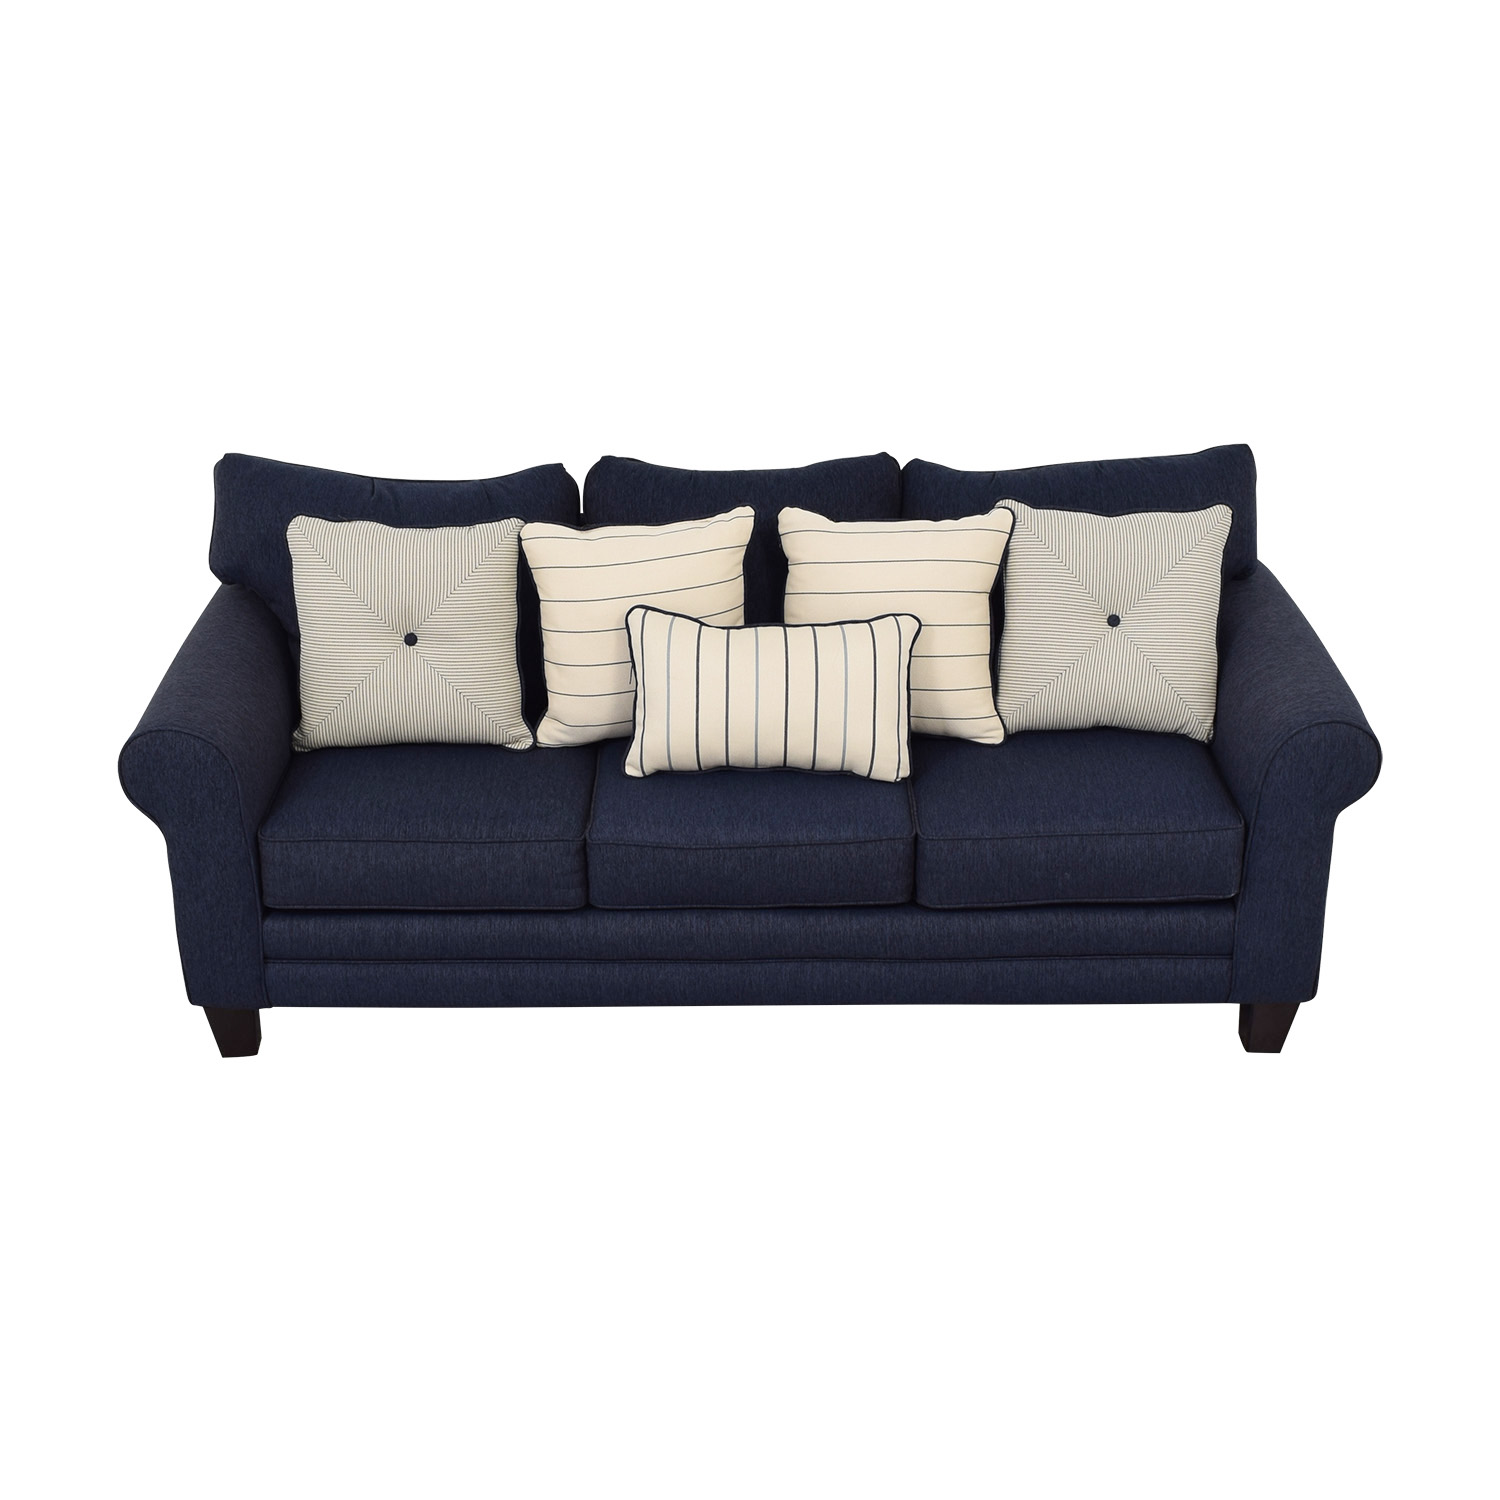 Raymour & Flanigan Raymour & Flanigan Navy Three-Cushion Sofa price